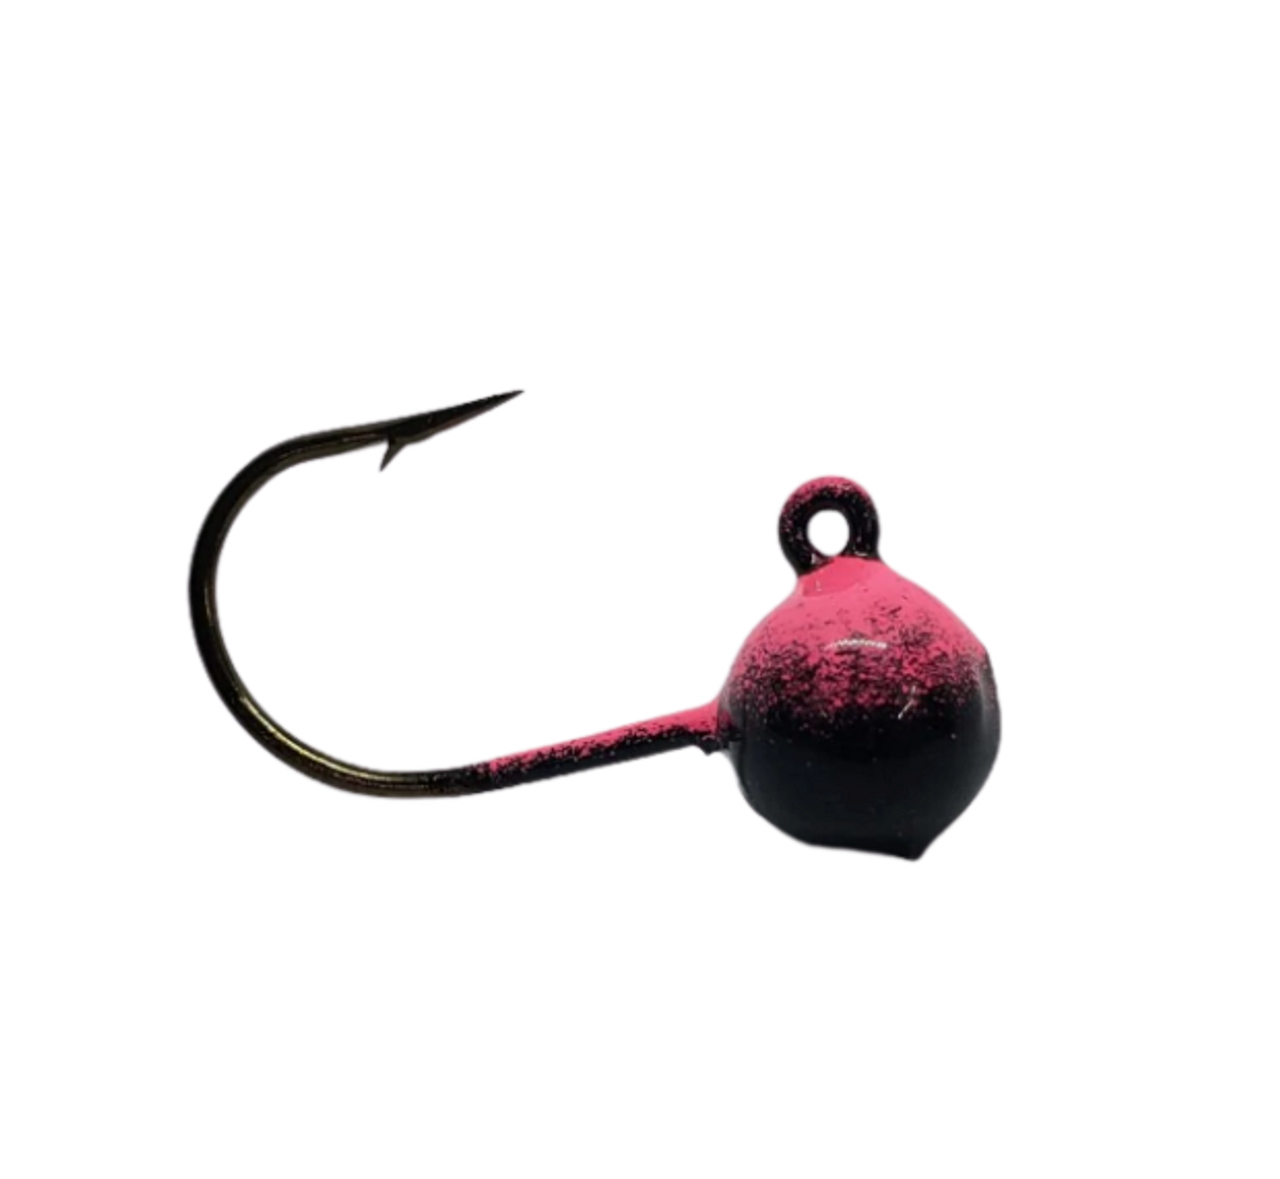 Short Shank 1/8 Ball Jigs These short shank ball jigs are the perfect combination for those finicky walleye who are light biting. The small presentation paired with a minnow or leech assists with those bites when walleye are just sucking it in. Short shank jigs are also a favourite for using with live minnows. The added bonus of the short shank also means quicker hook set.